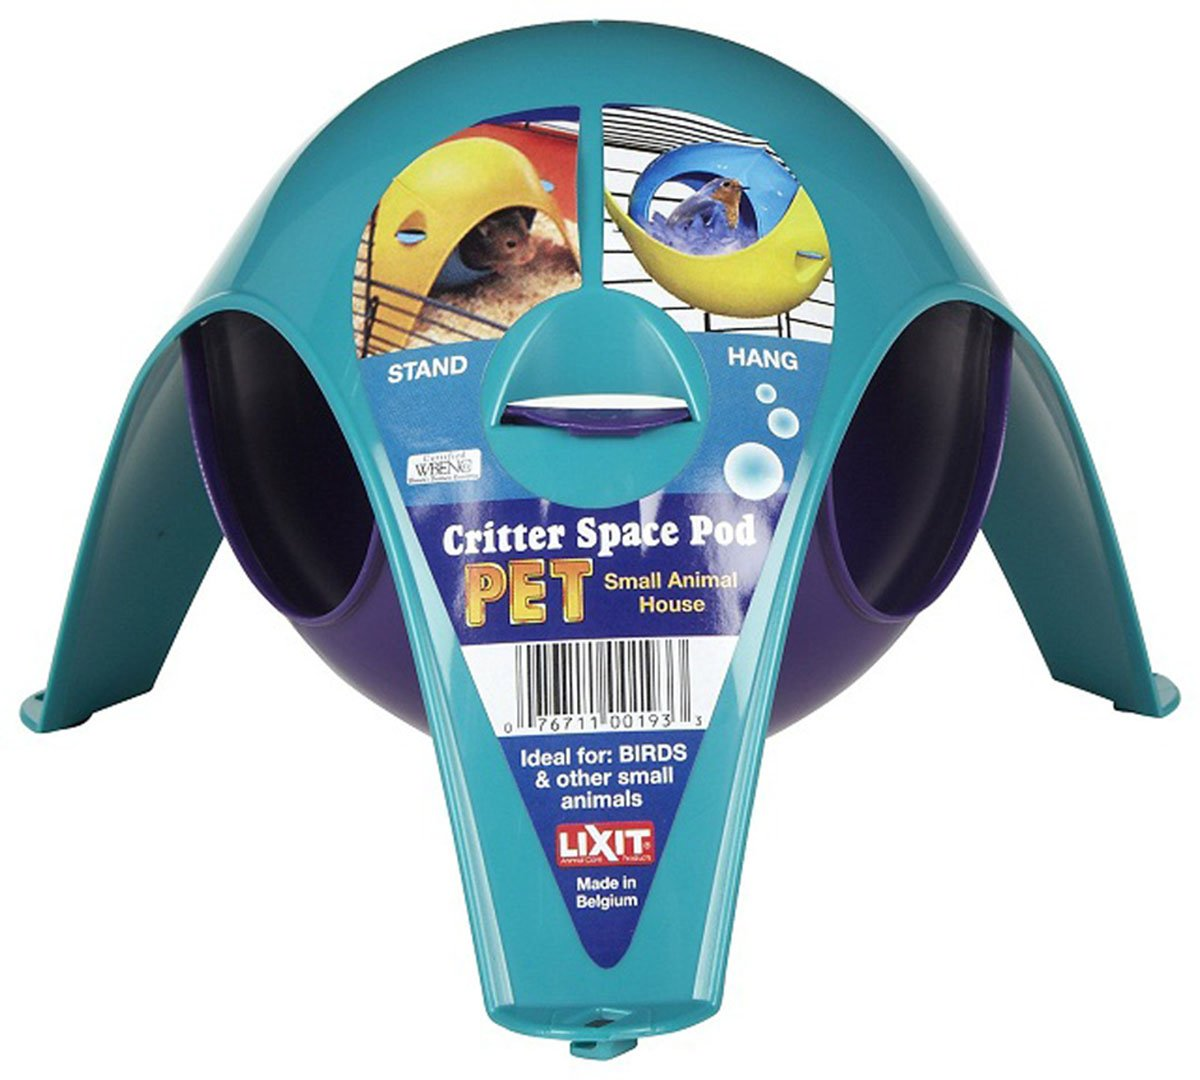 Lixit Critter Space Pod 2 Large